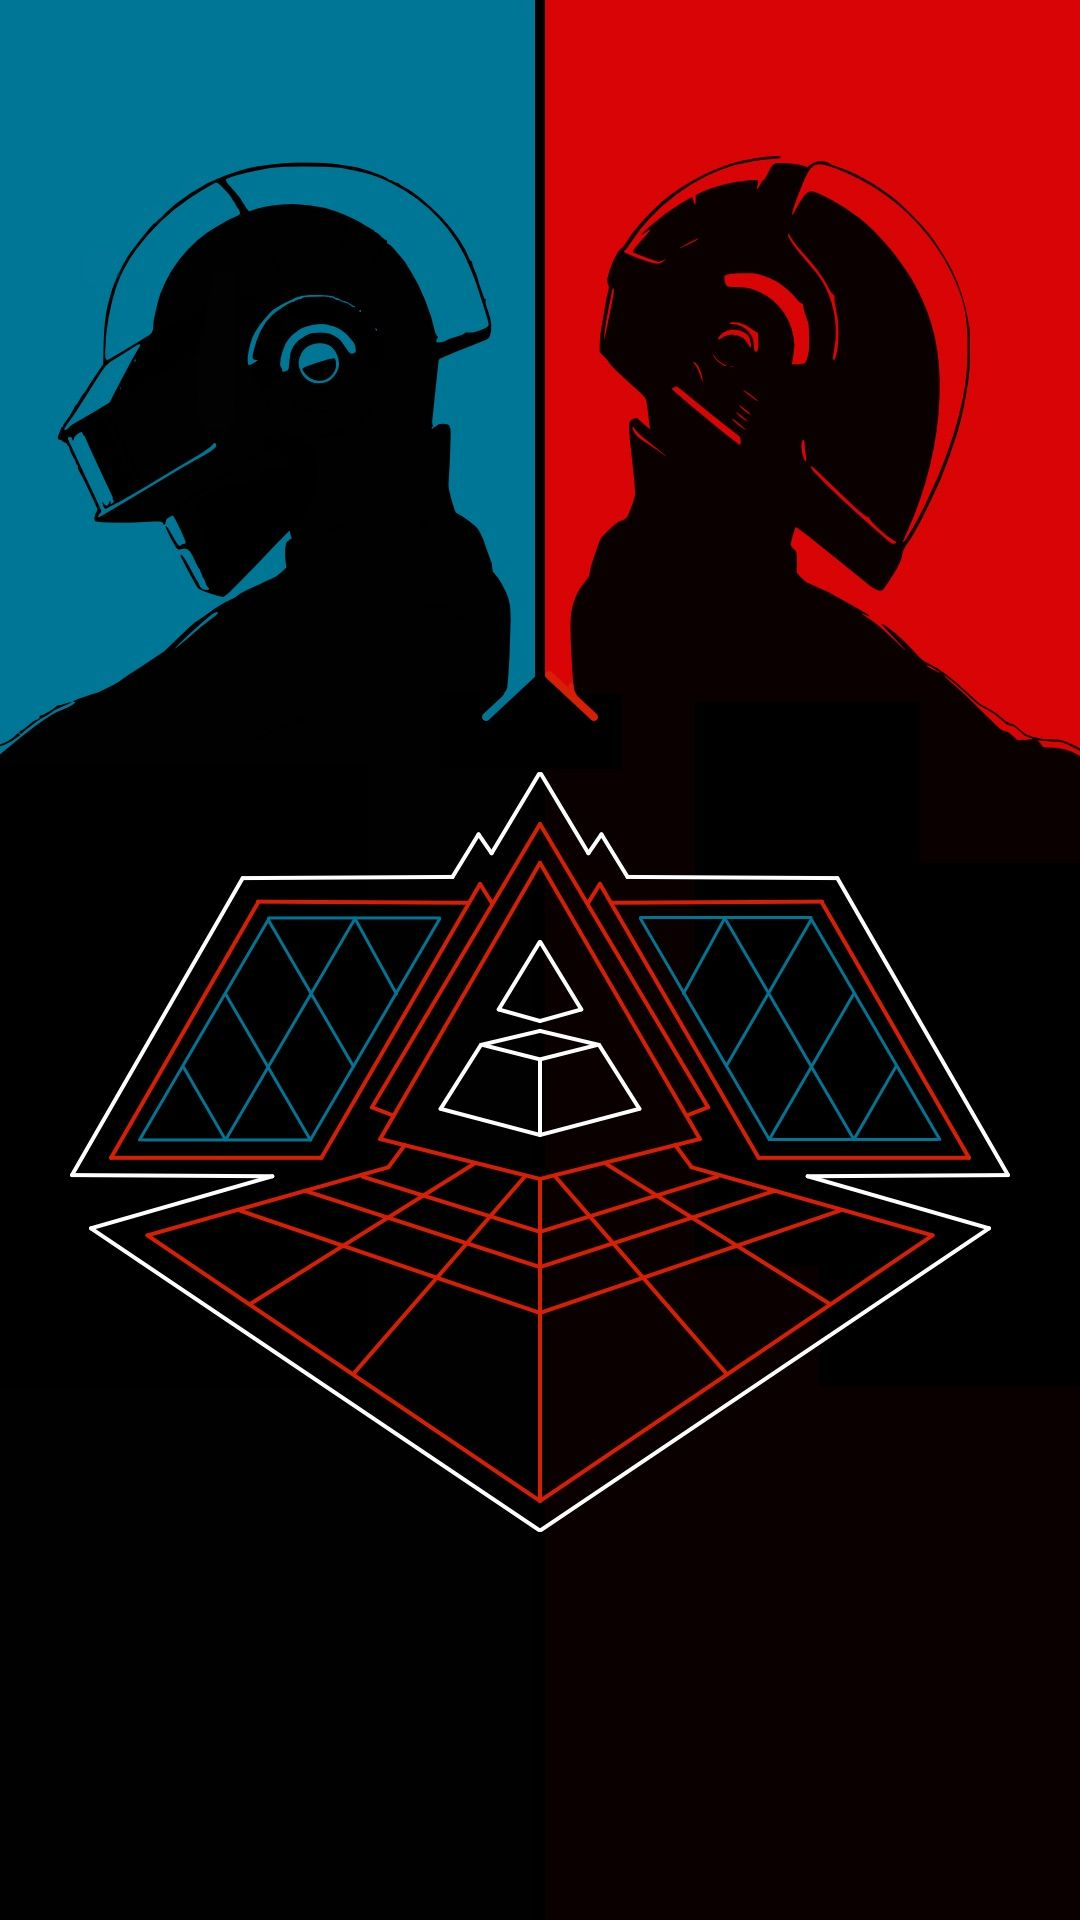 Daft Punk Alive Phone Wallpaper 1080 x 1920 in 2019 ...